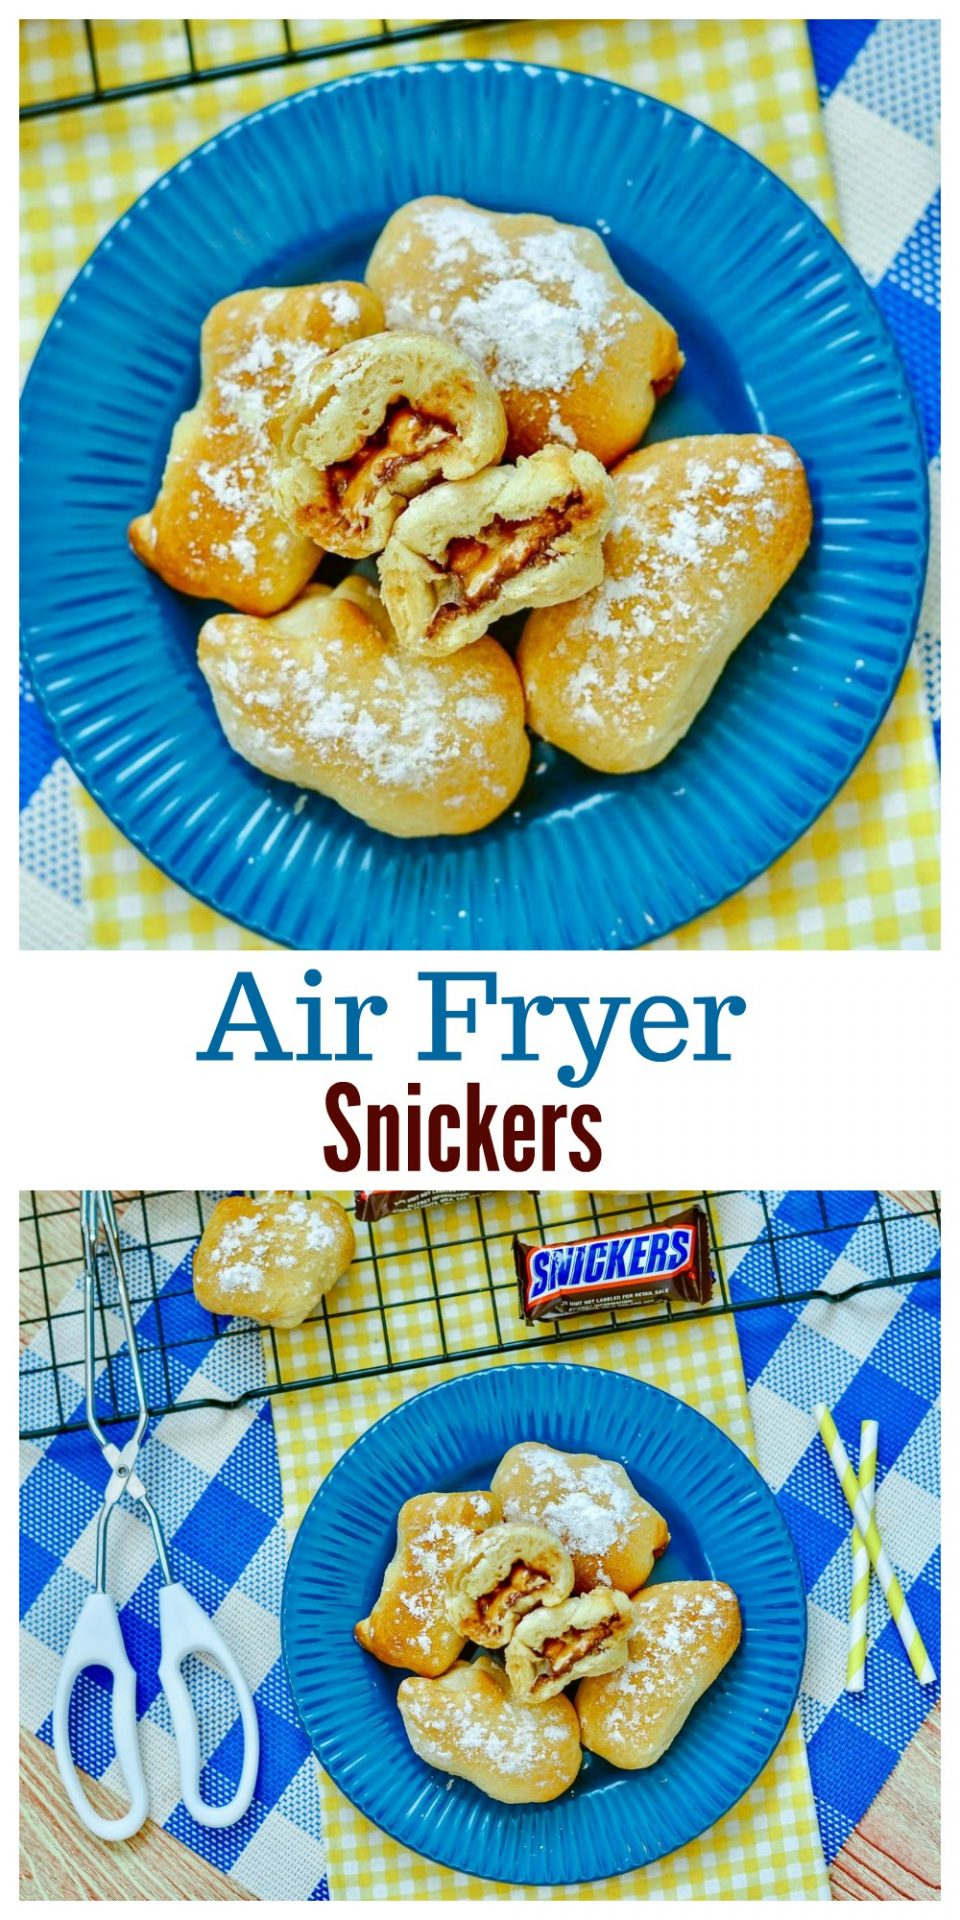 This sweet treat is the ultimate air fryer dessert recipe. Air Fryer Snickers are easy to make and will surely satisfy that sweet craving you've been having.